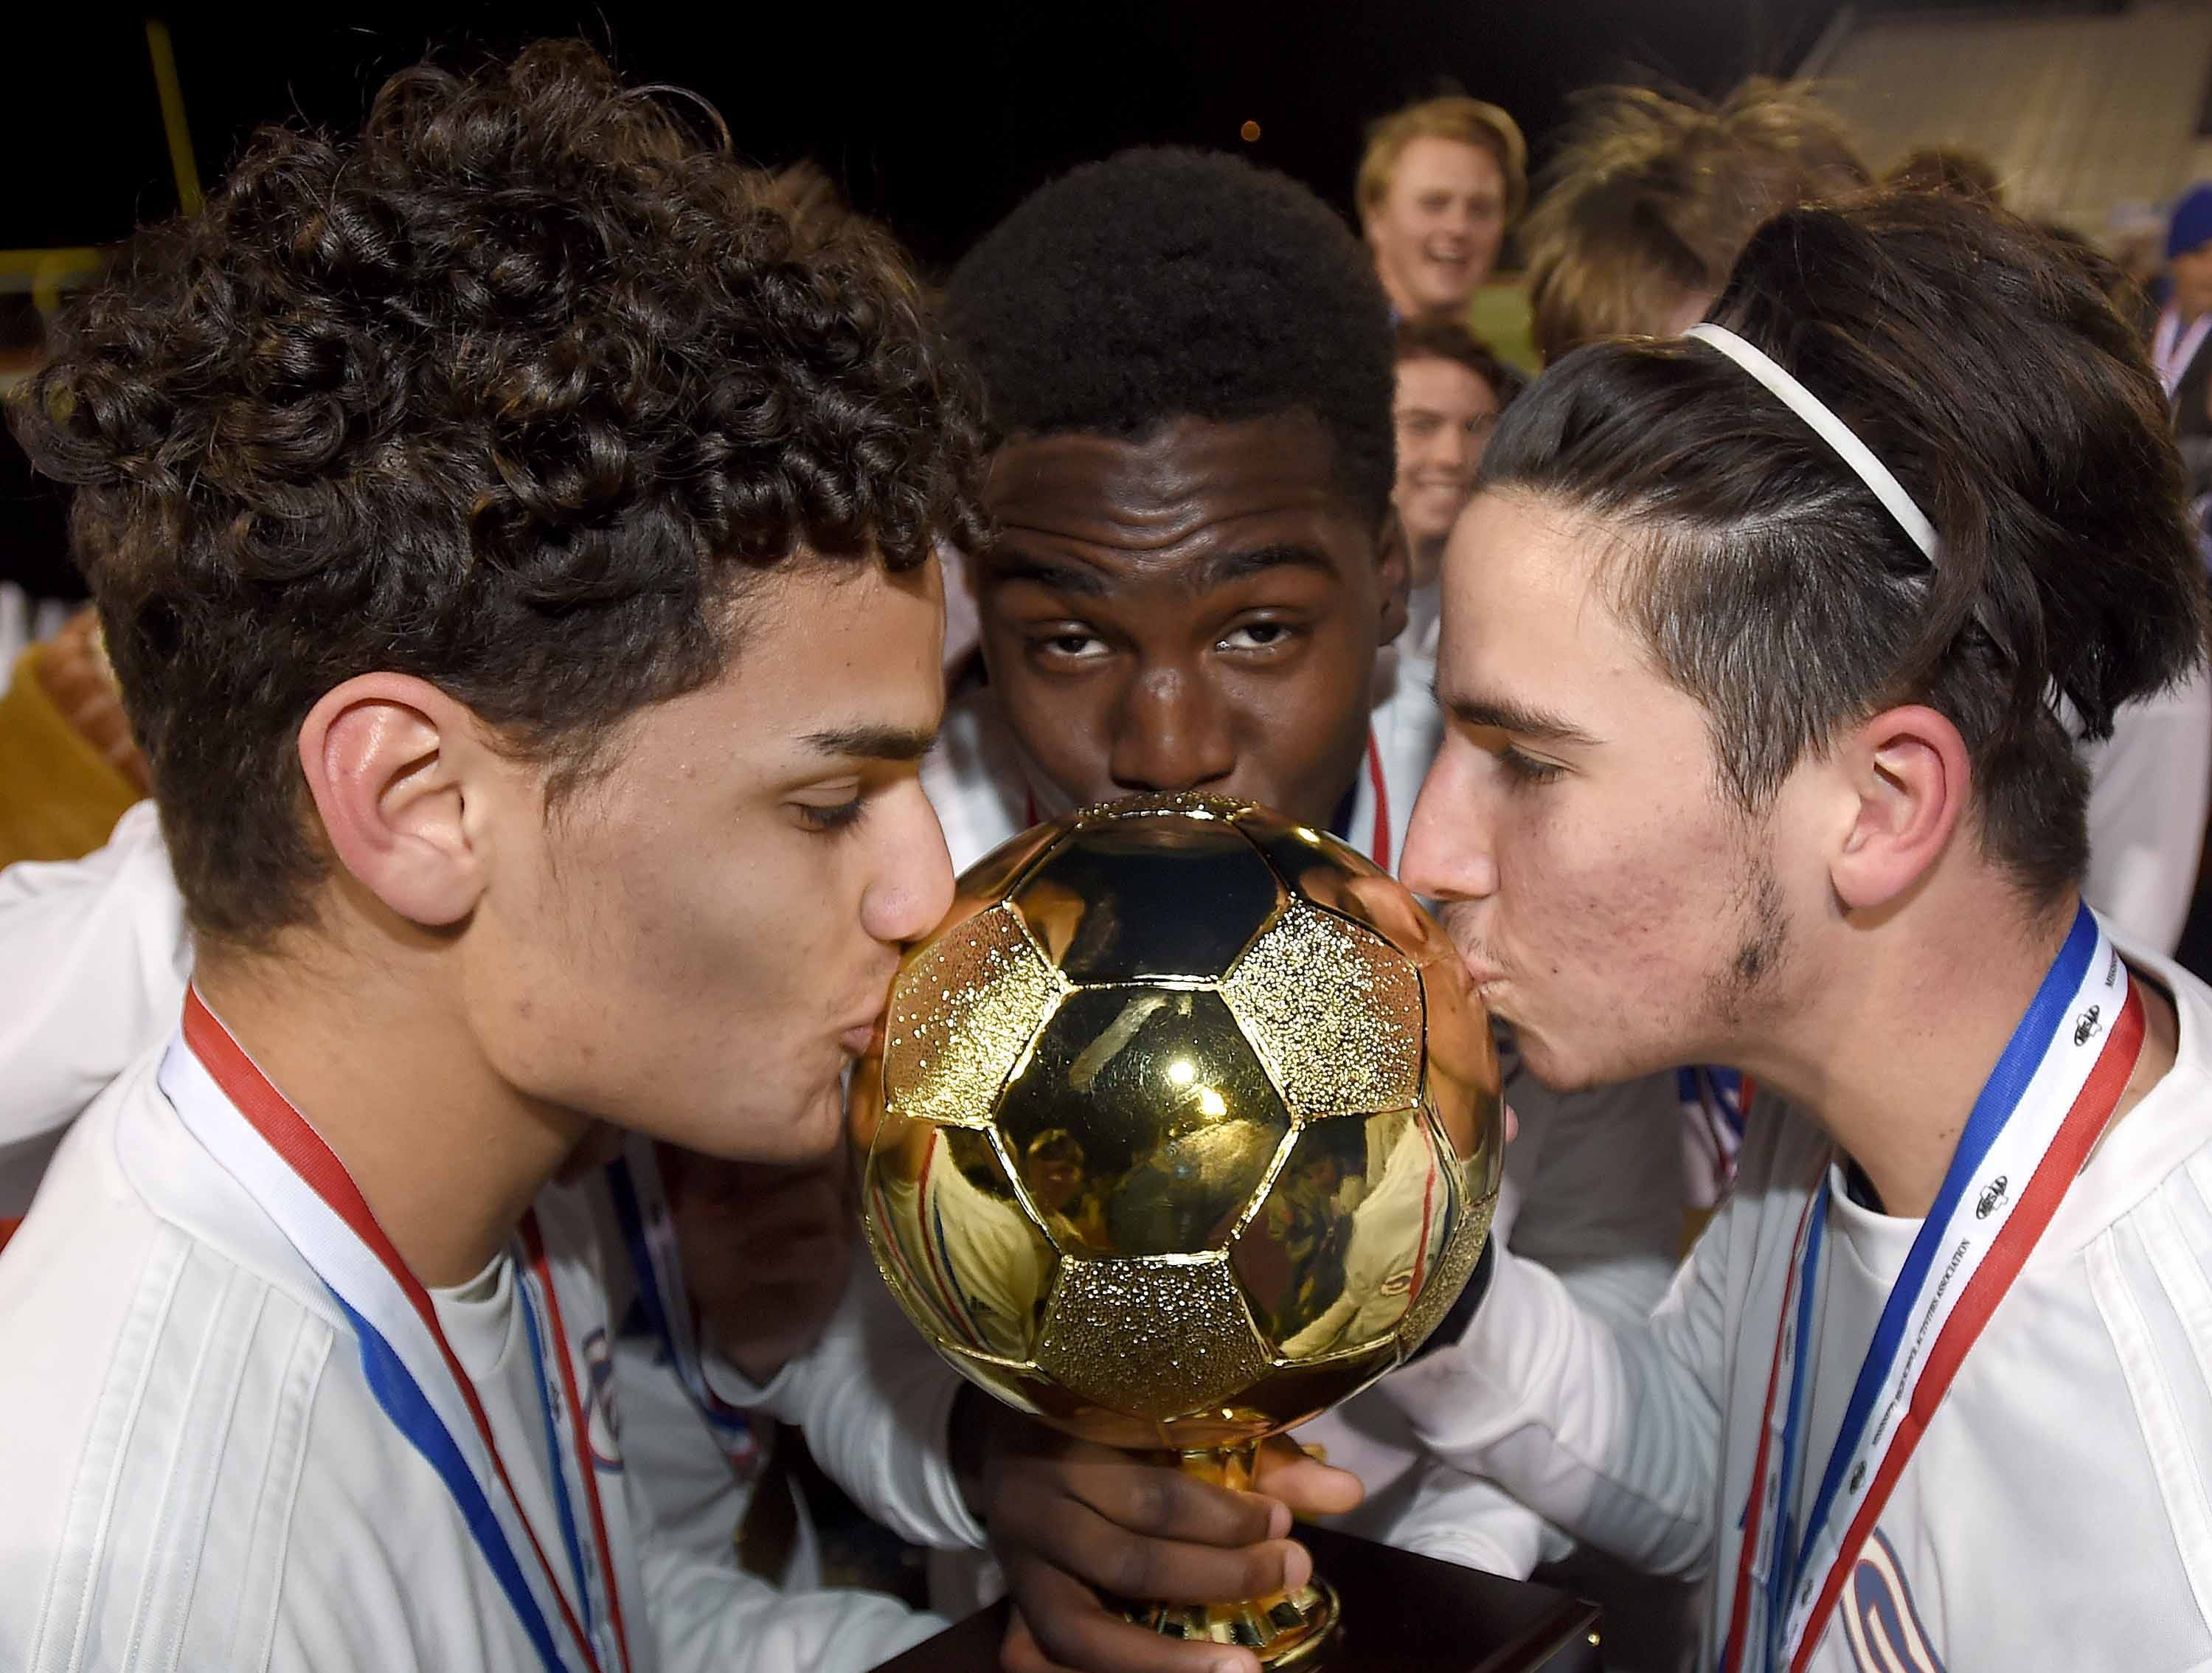 The Gulfport Admirals kiss the Class 6A state championship trophy after defending their 2018 state title beating Northwest Rankin 2-1 in the MHSAA BlueCross Blue Shield of Mississippi Soccer Classic on Saturday, February 9, 2019, at Ridgeland High School in Ridgeland, Miss.